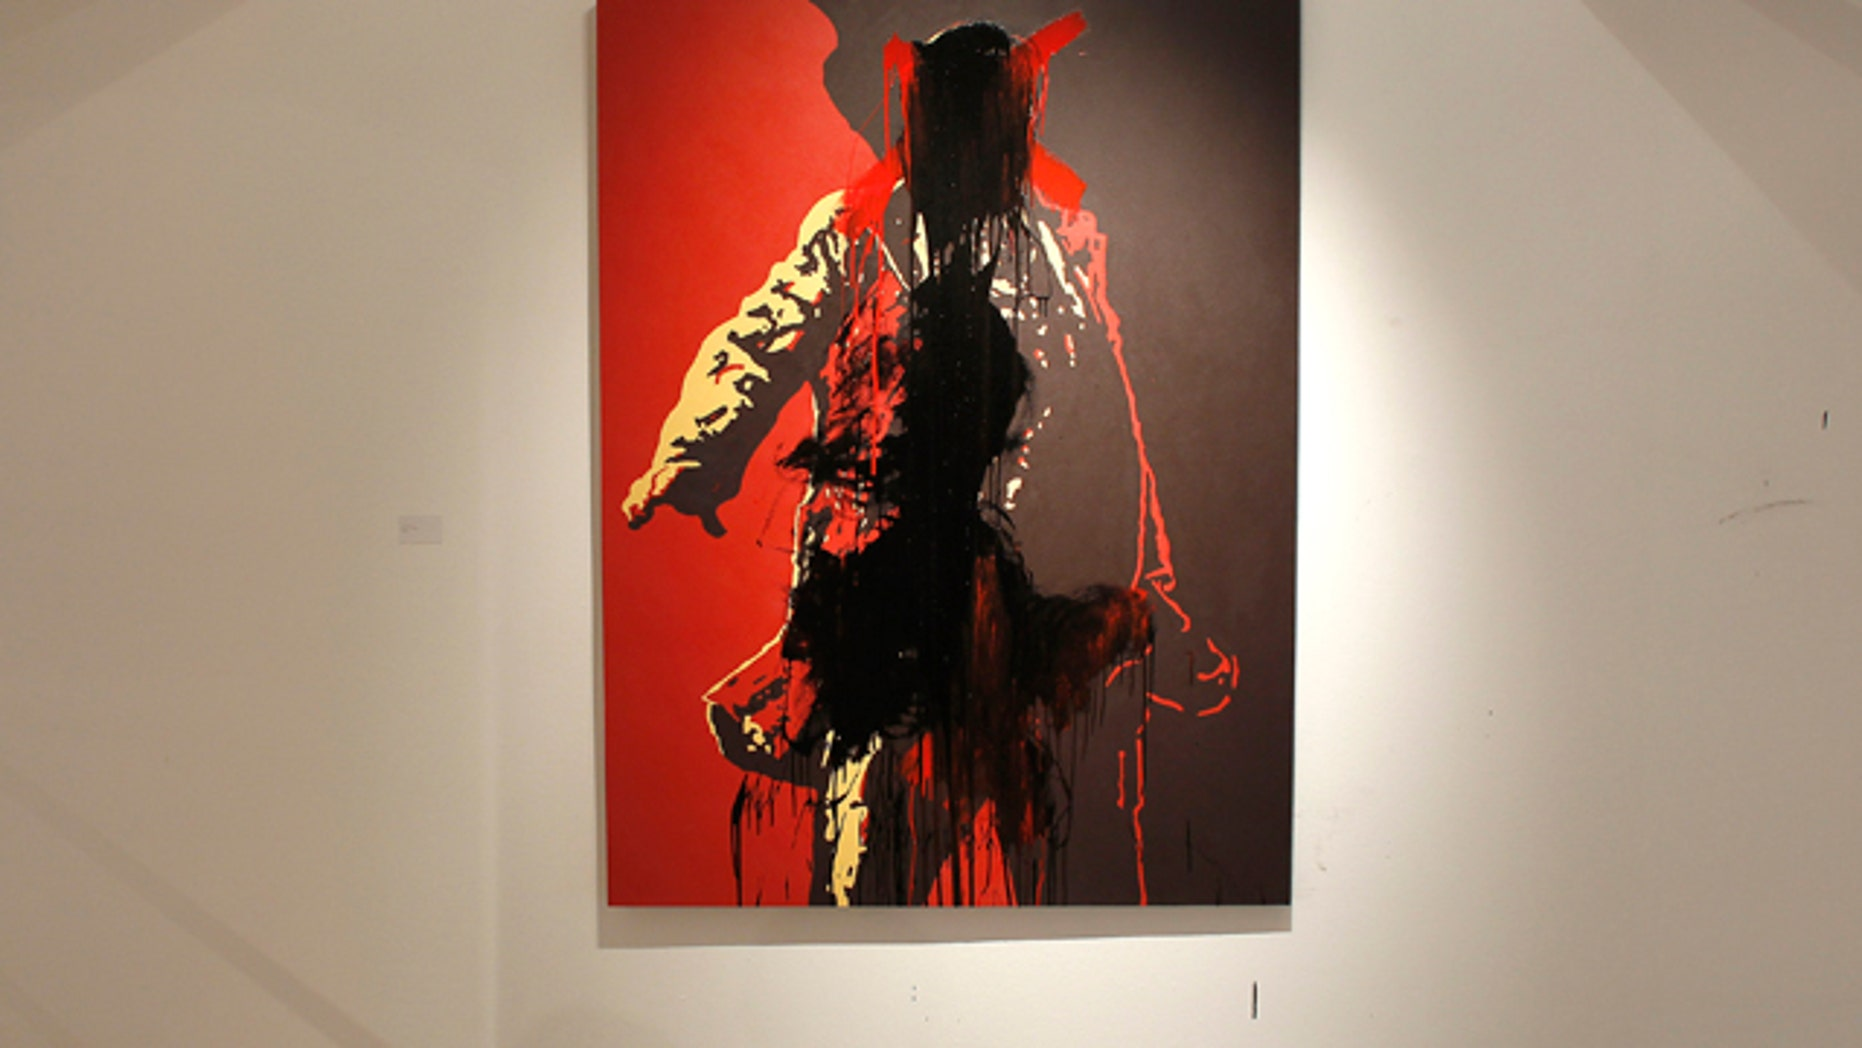 May 22, 2011: An unidentified man defaces a controversial portrait of South African President Jacob Zuma at the Goodman Gallery in Johannesburg, South Africa.